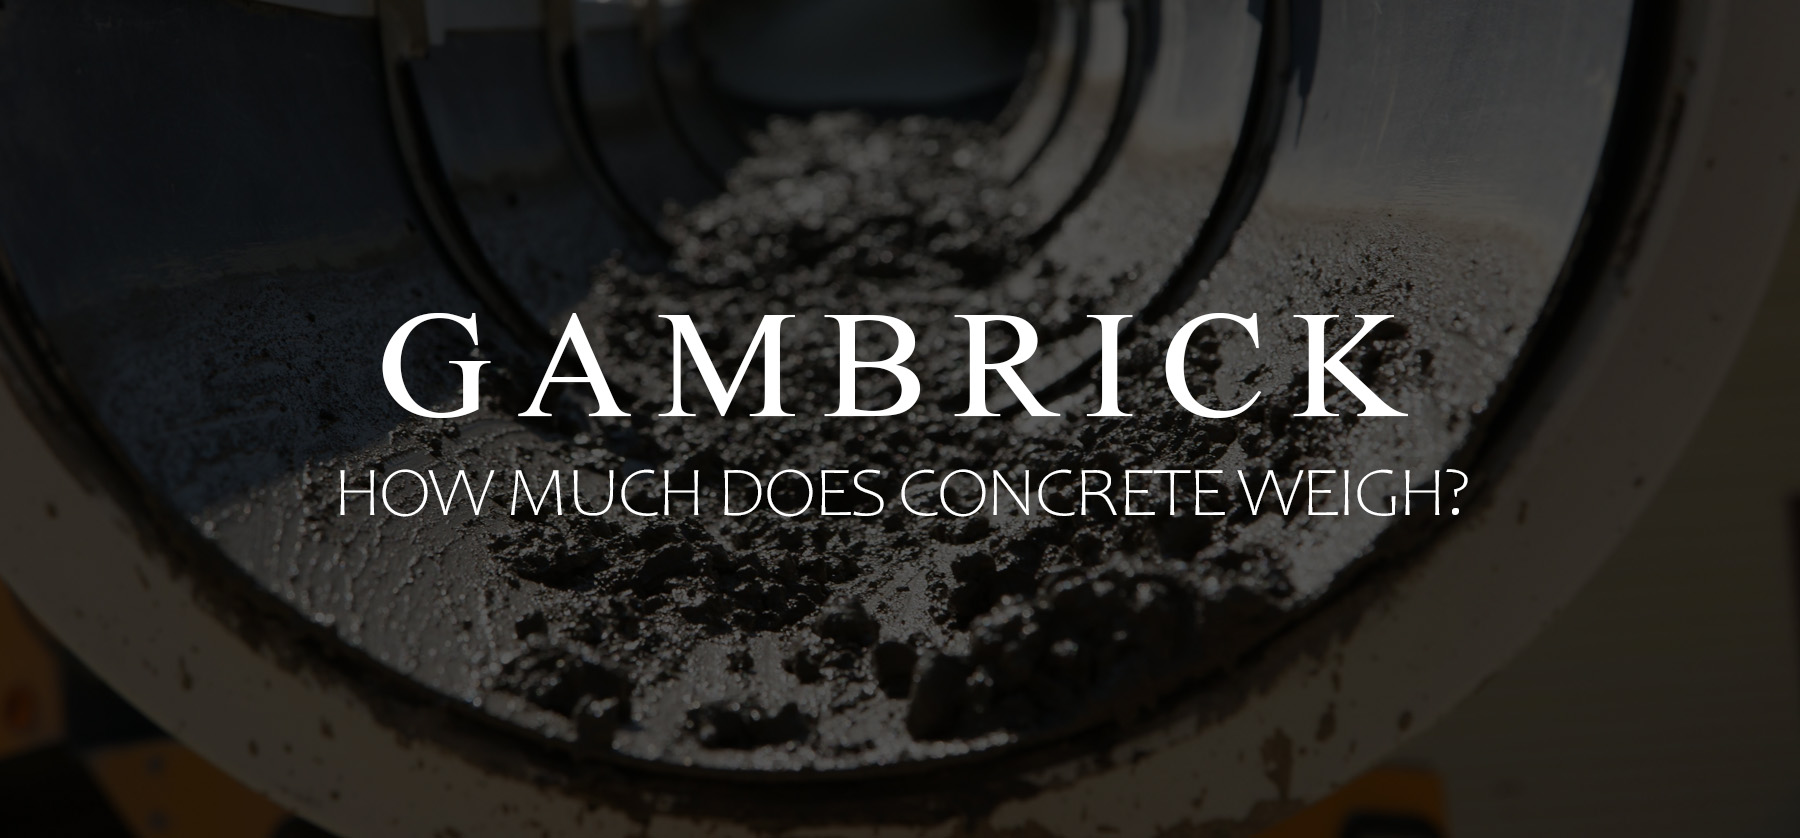 how much does concrete weigh banner pic